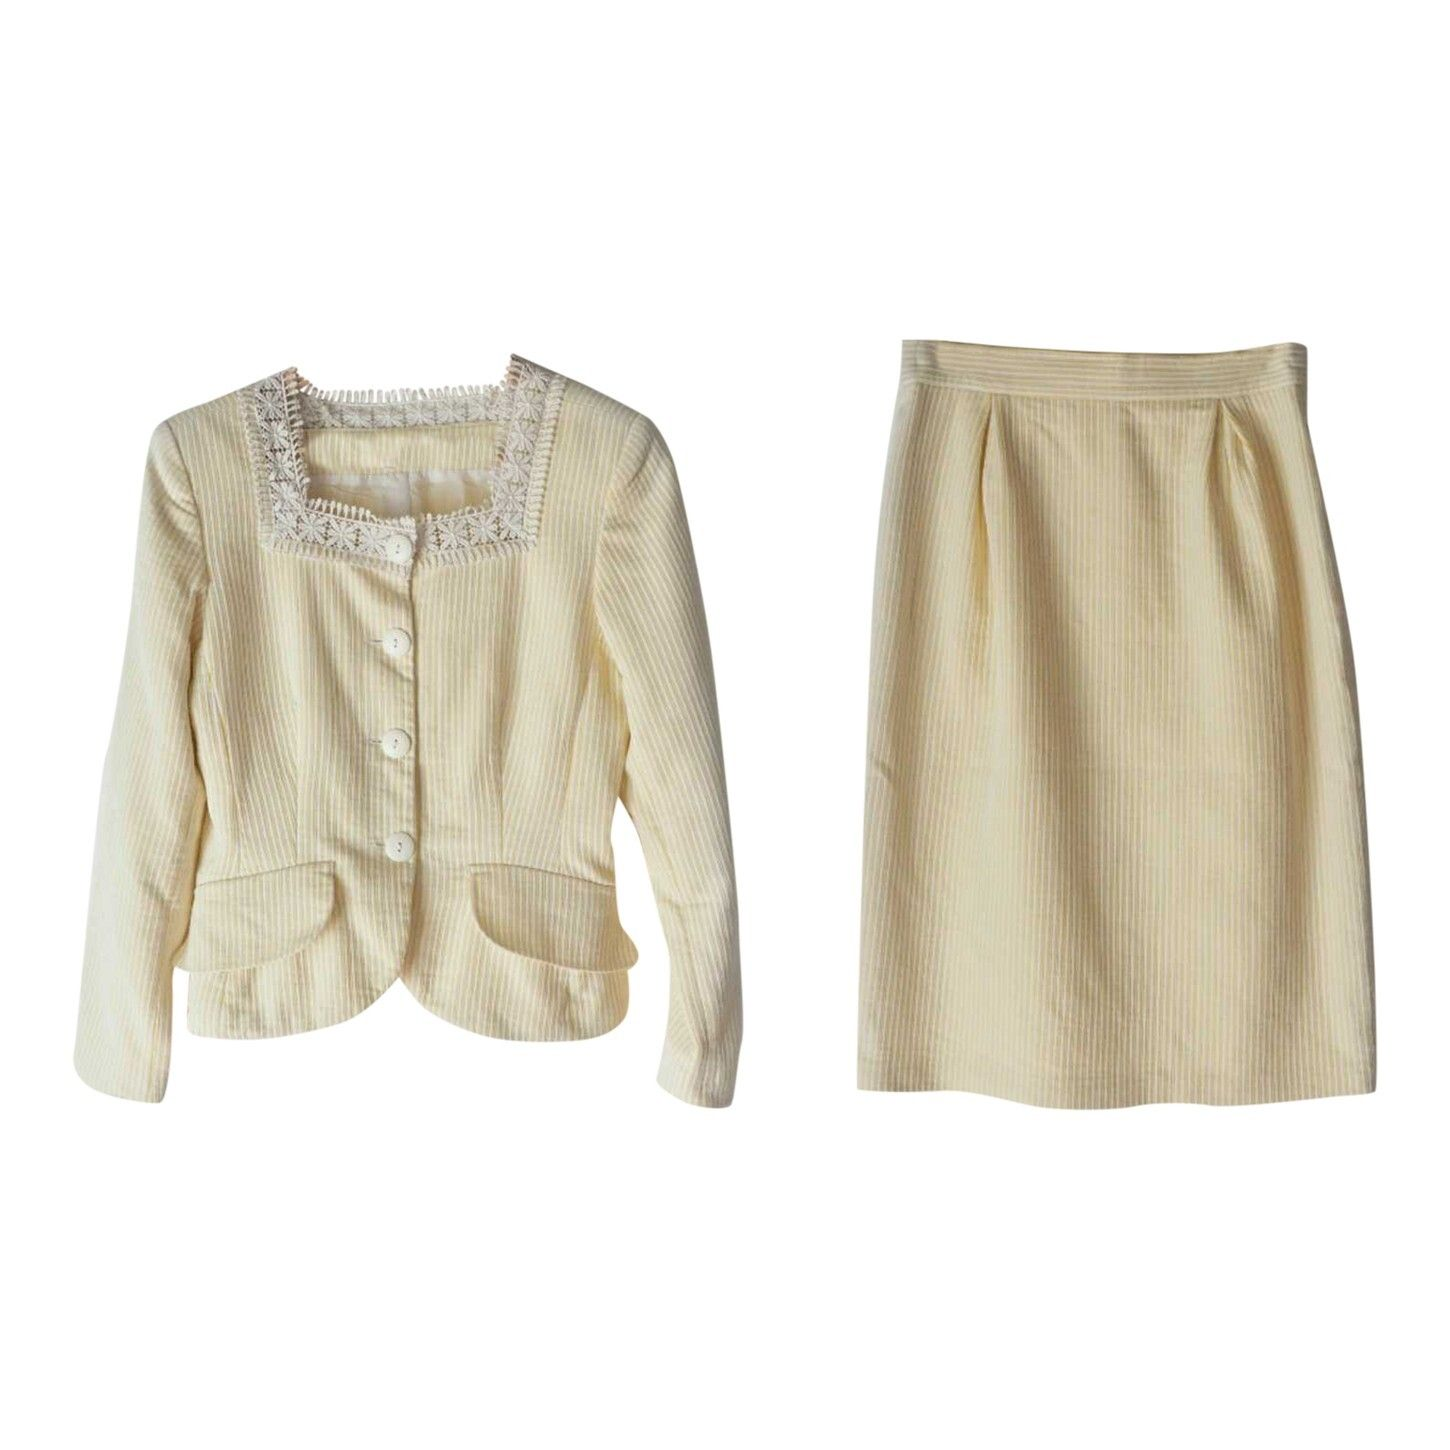 Tailleur jupe Cacharel